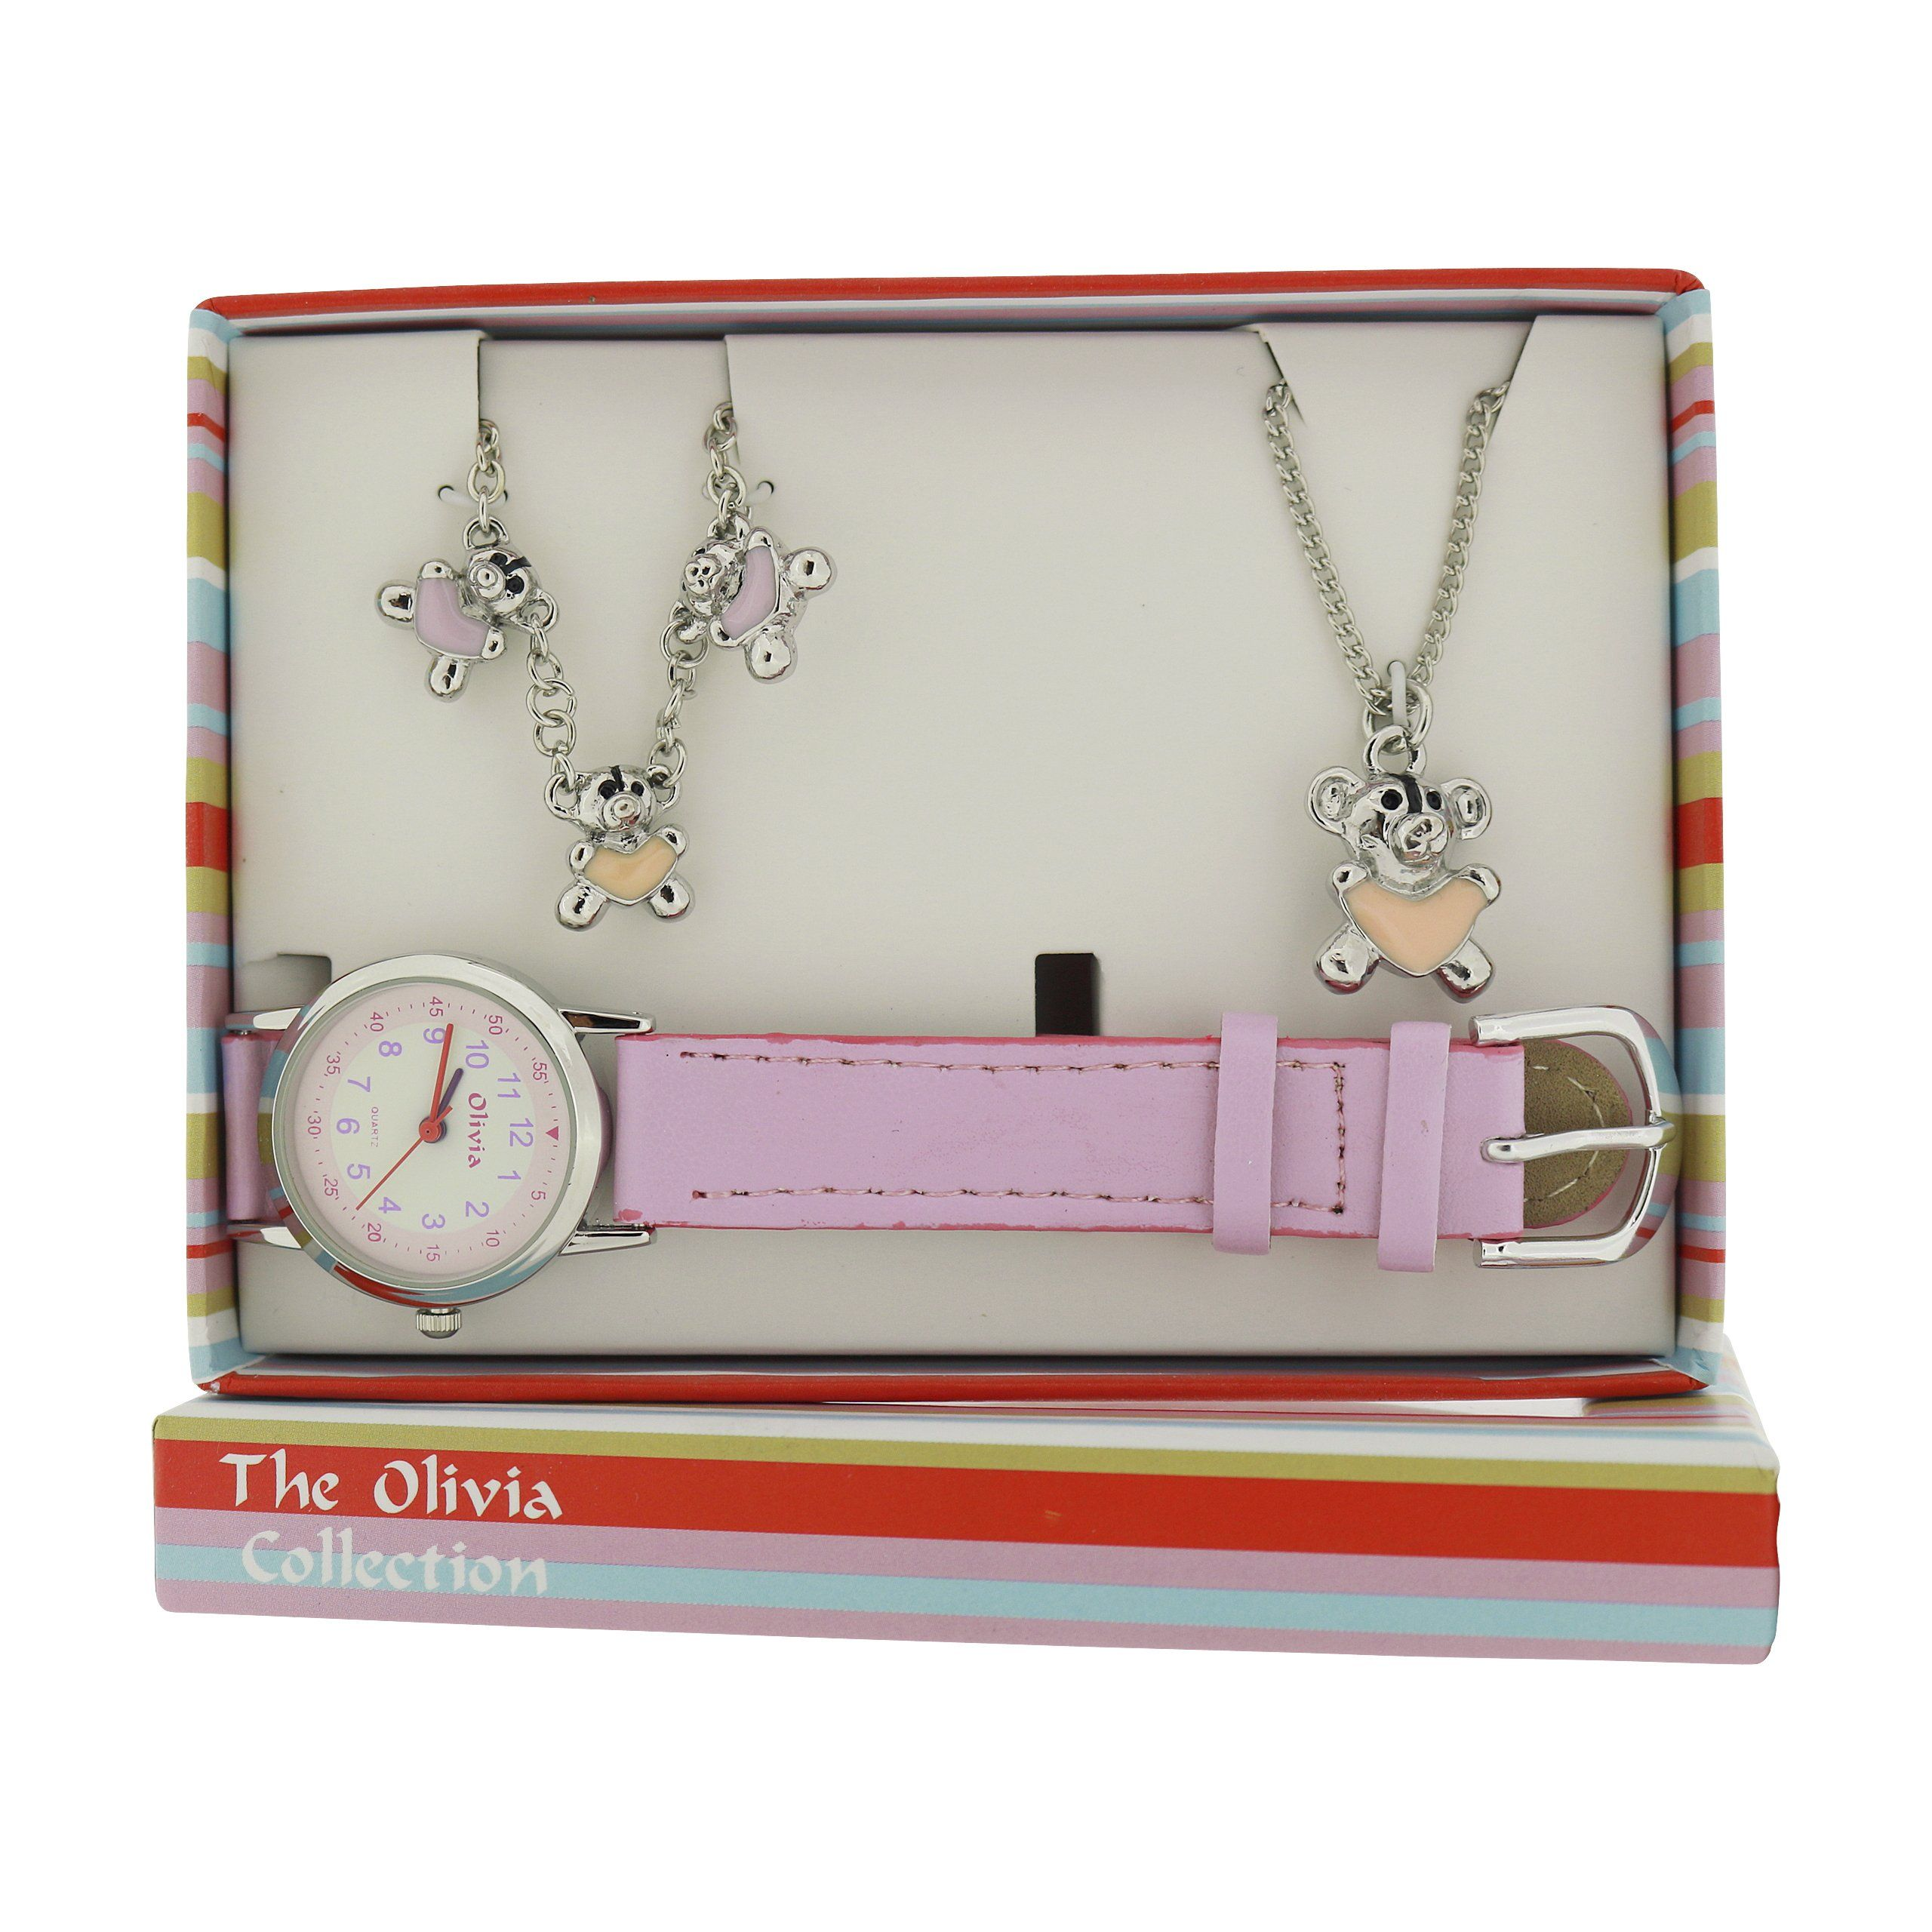 The olivia collection kids teddy bear watch u jewellery gift set for